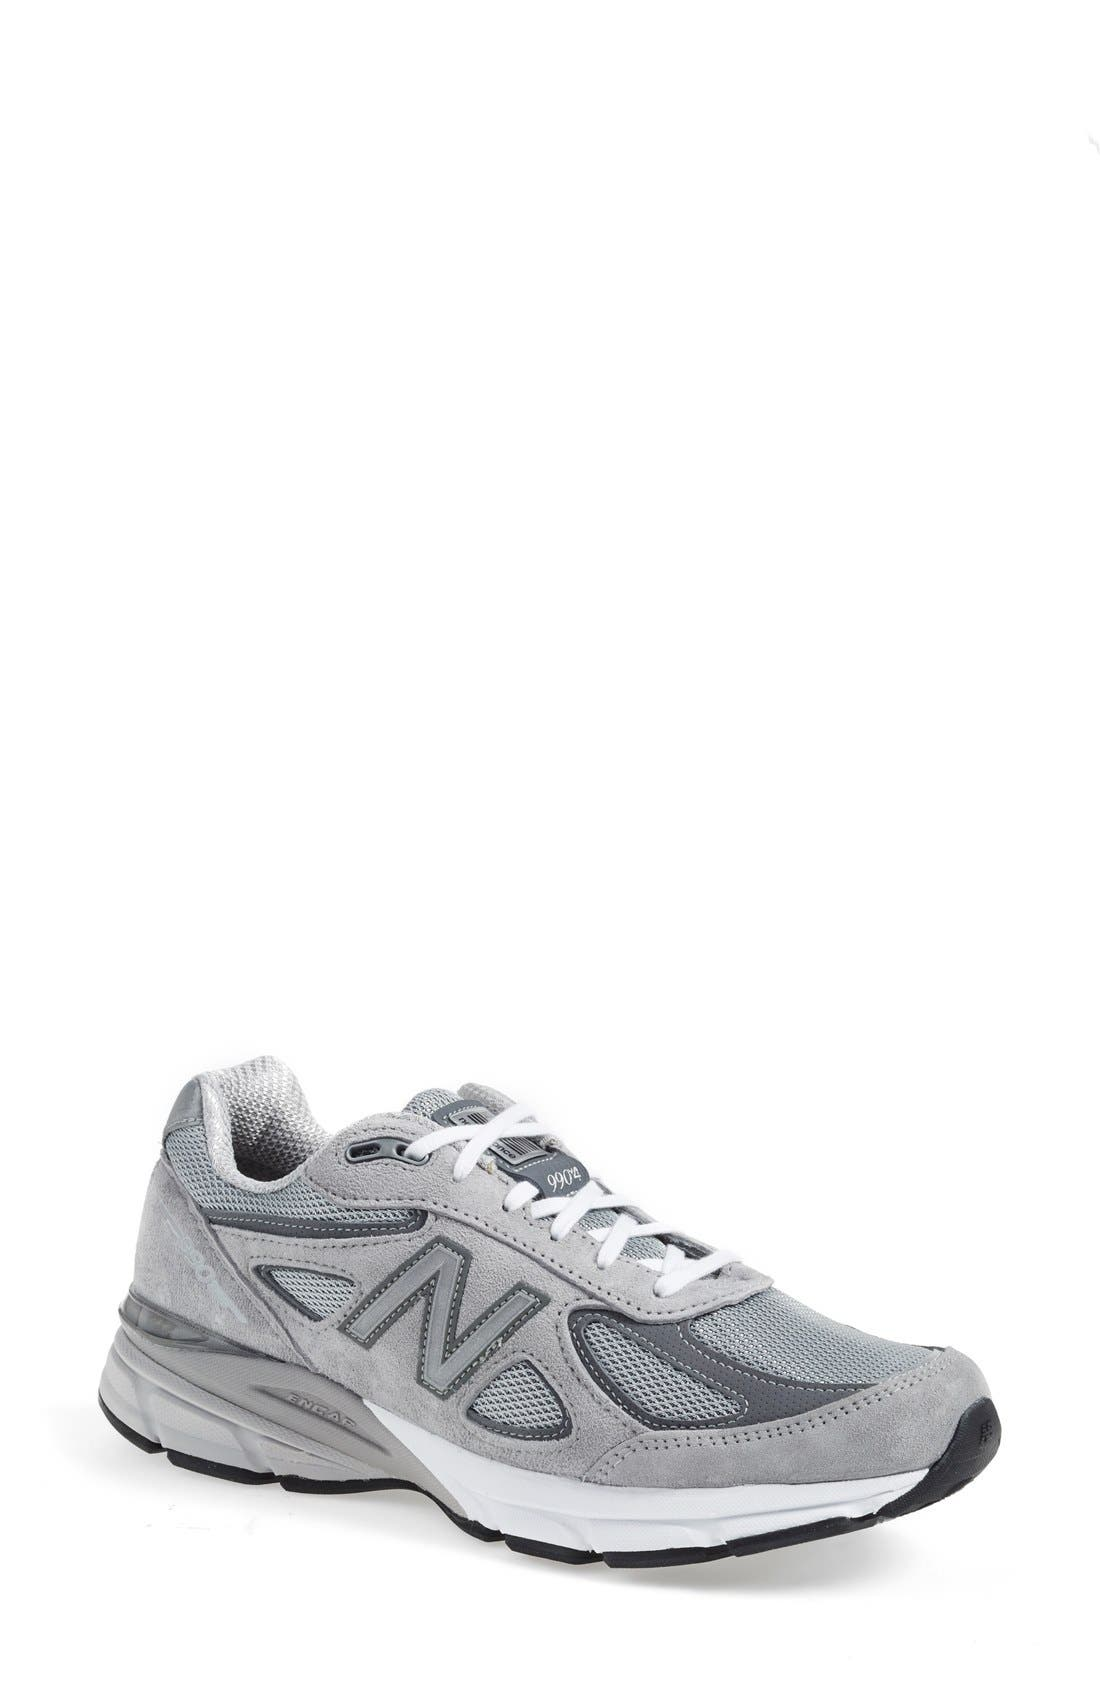 NEW BALANCE '990' Running Shoe, Main, color, COOL GREY